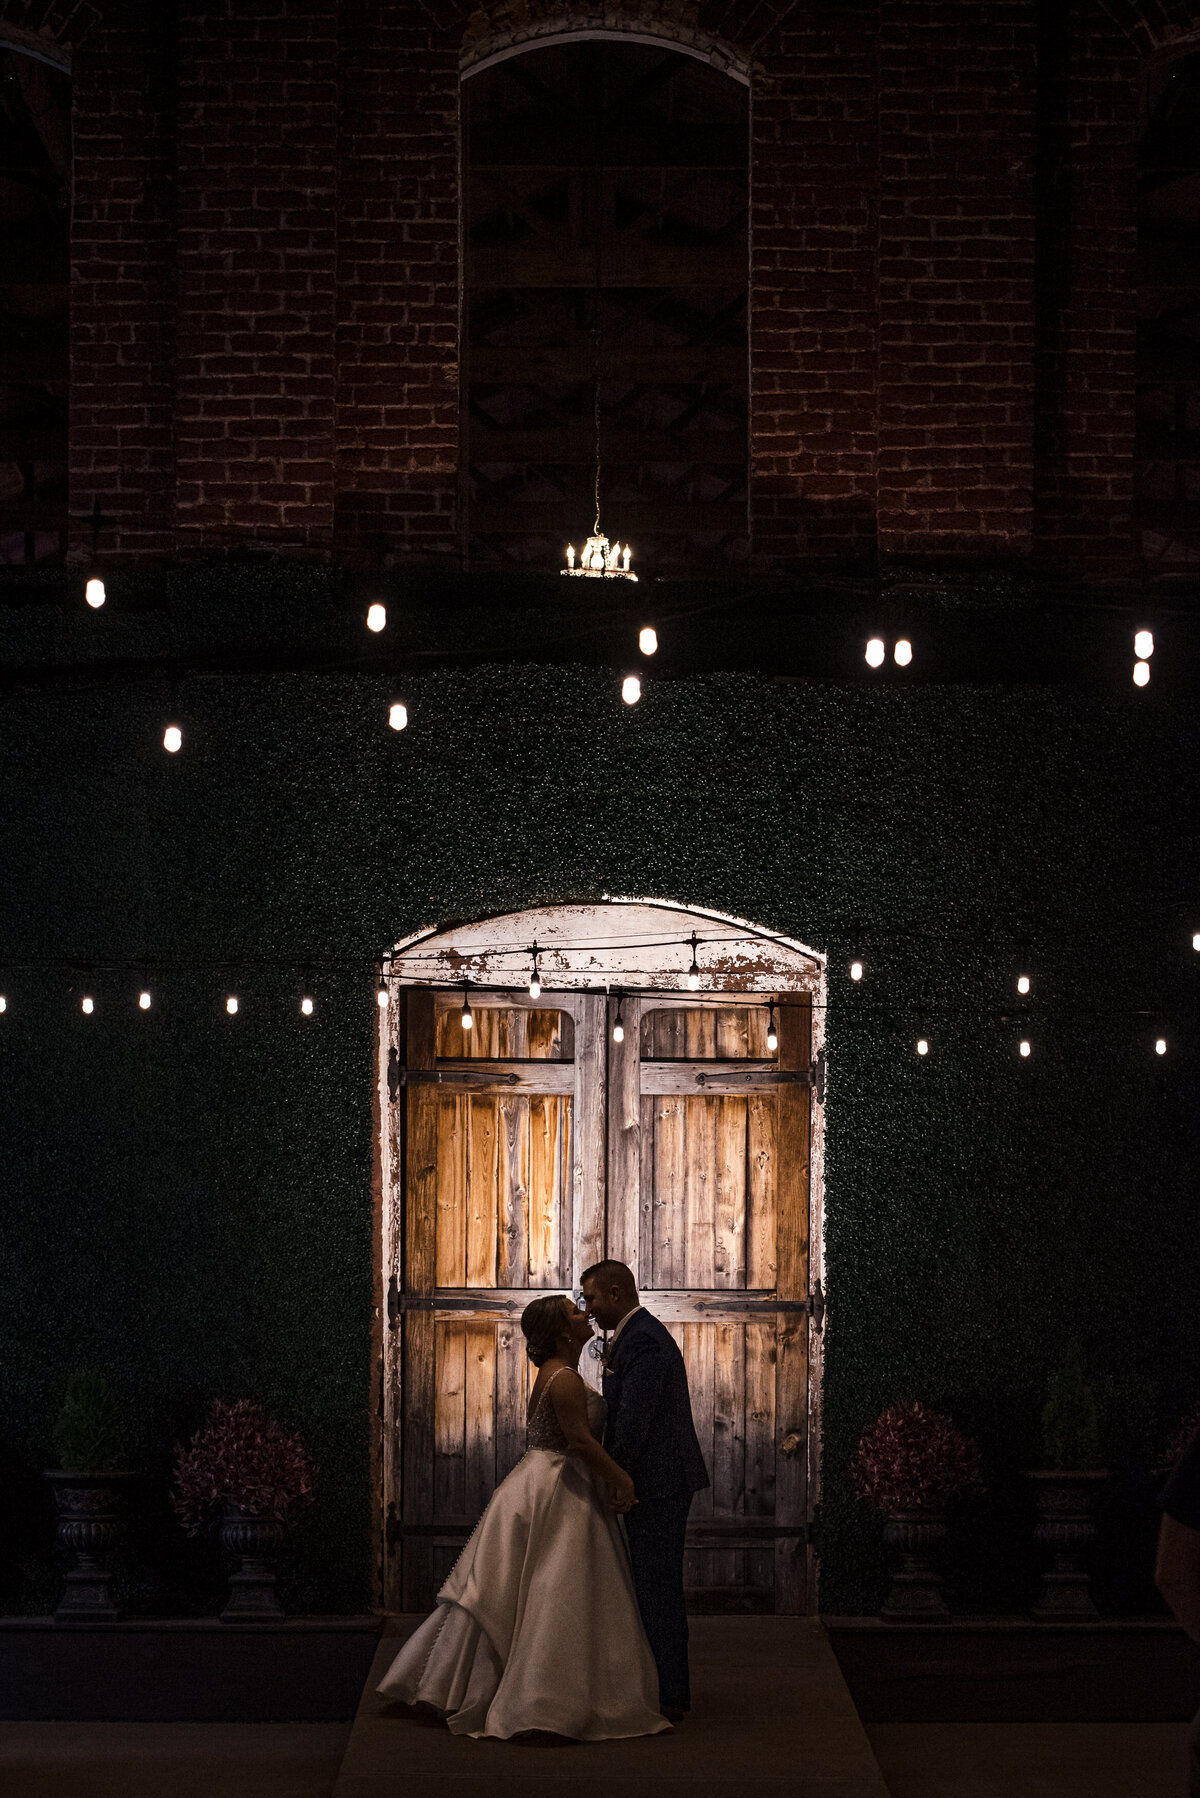 Silhouette of bride and groom at night